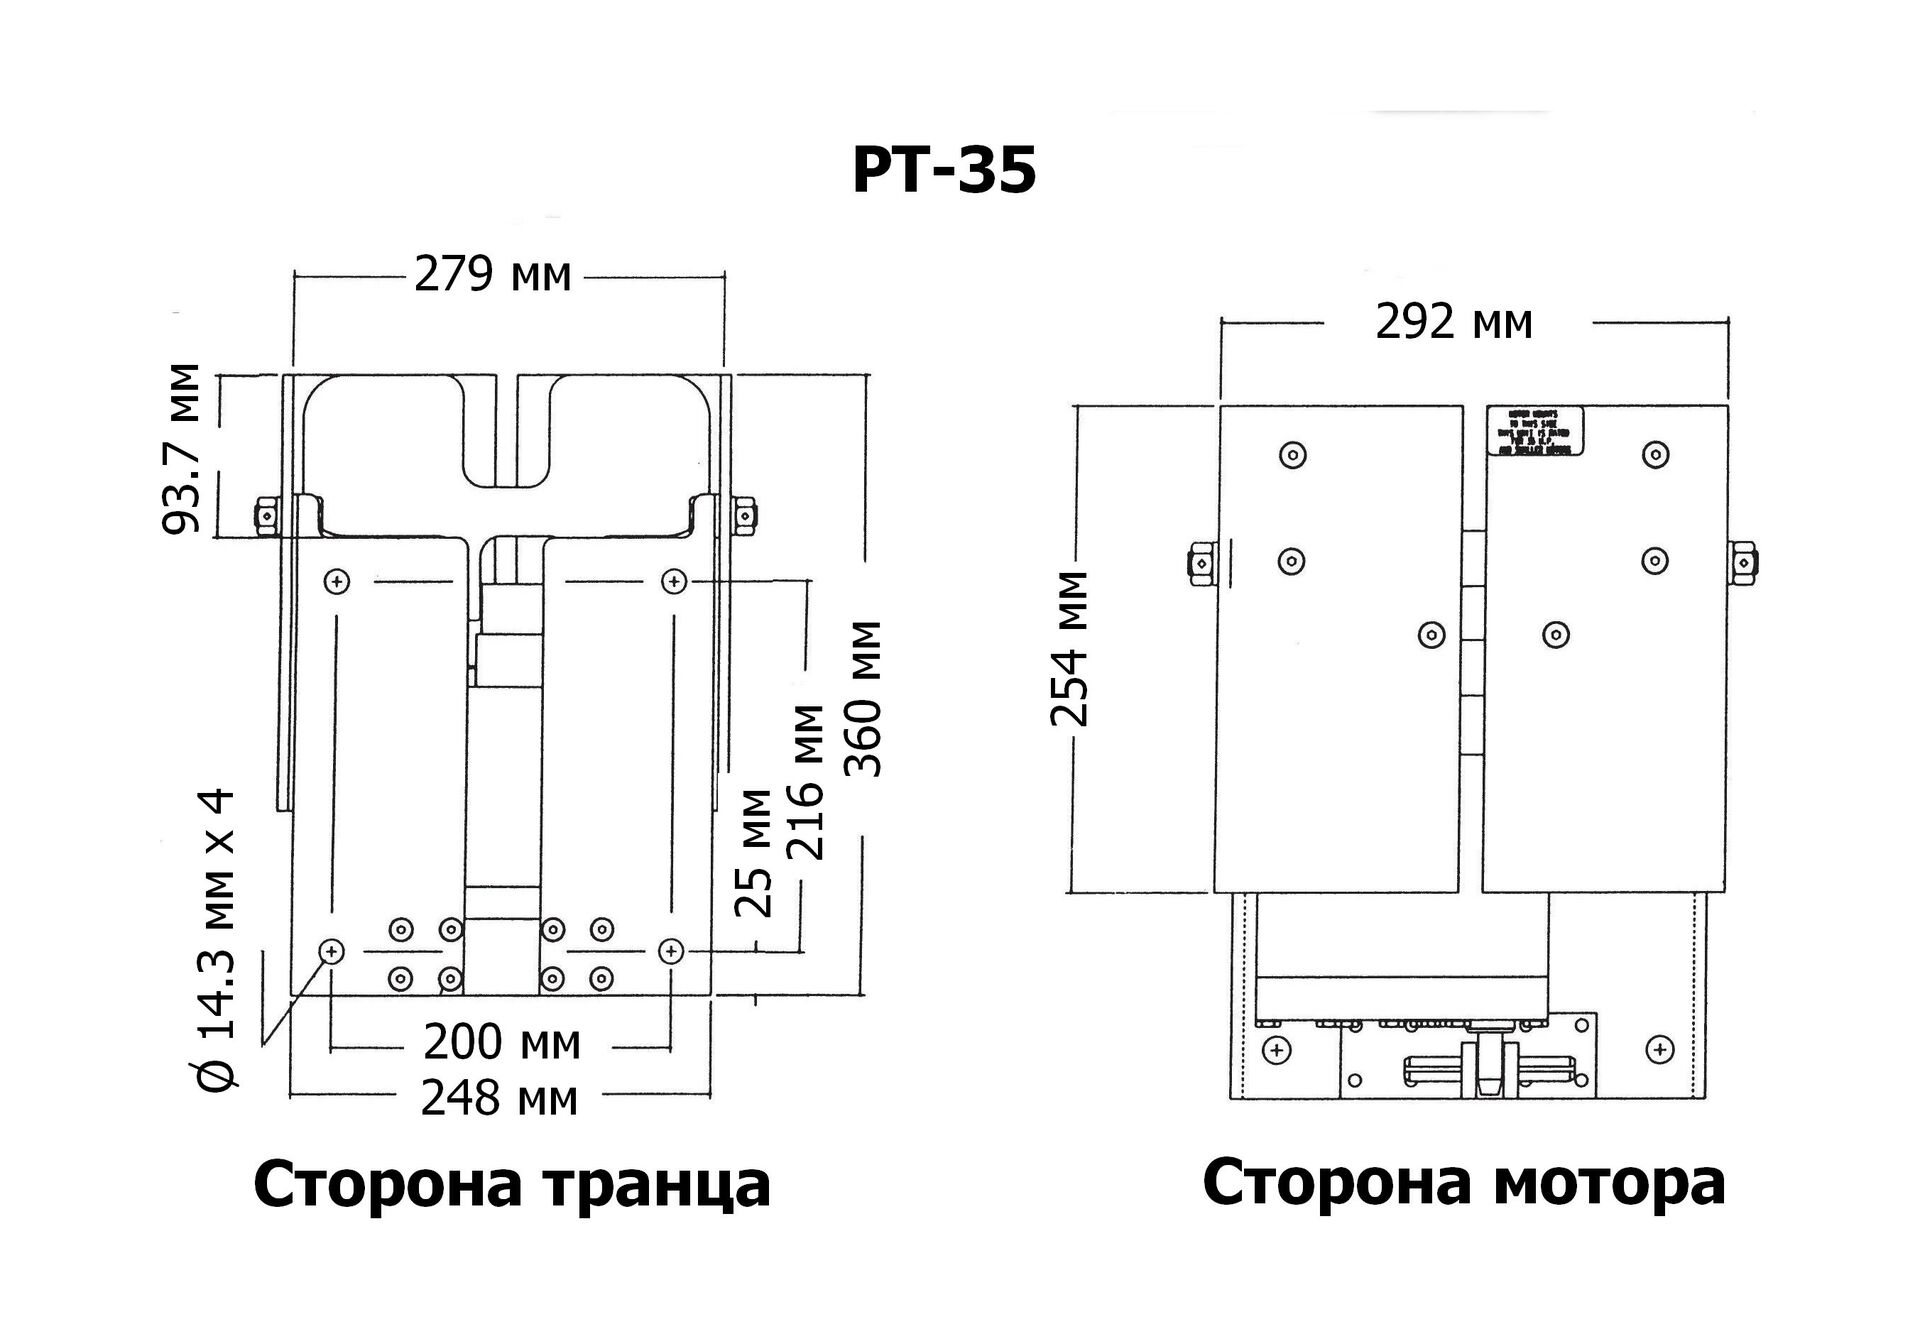 Buy Power Tilt And Trim Up To 35 Hp 52100 Pt35 00066347 Wiring Diagram 1 Next